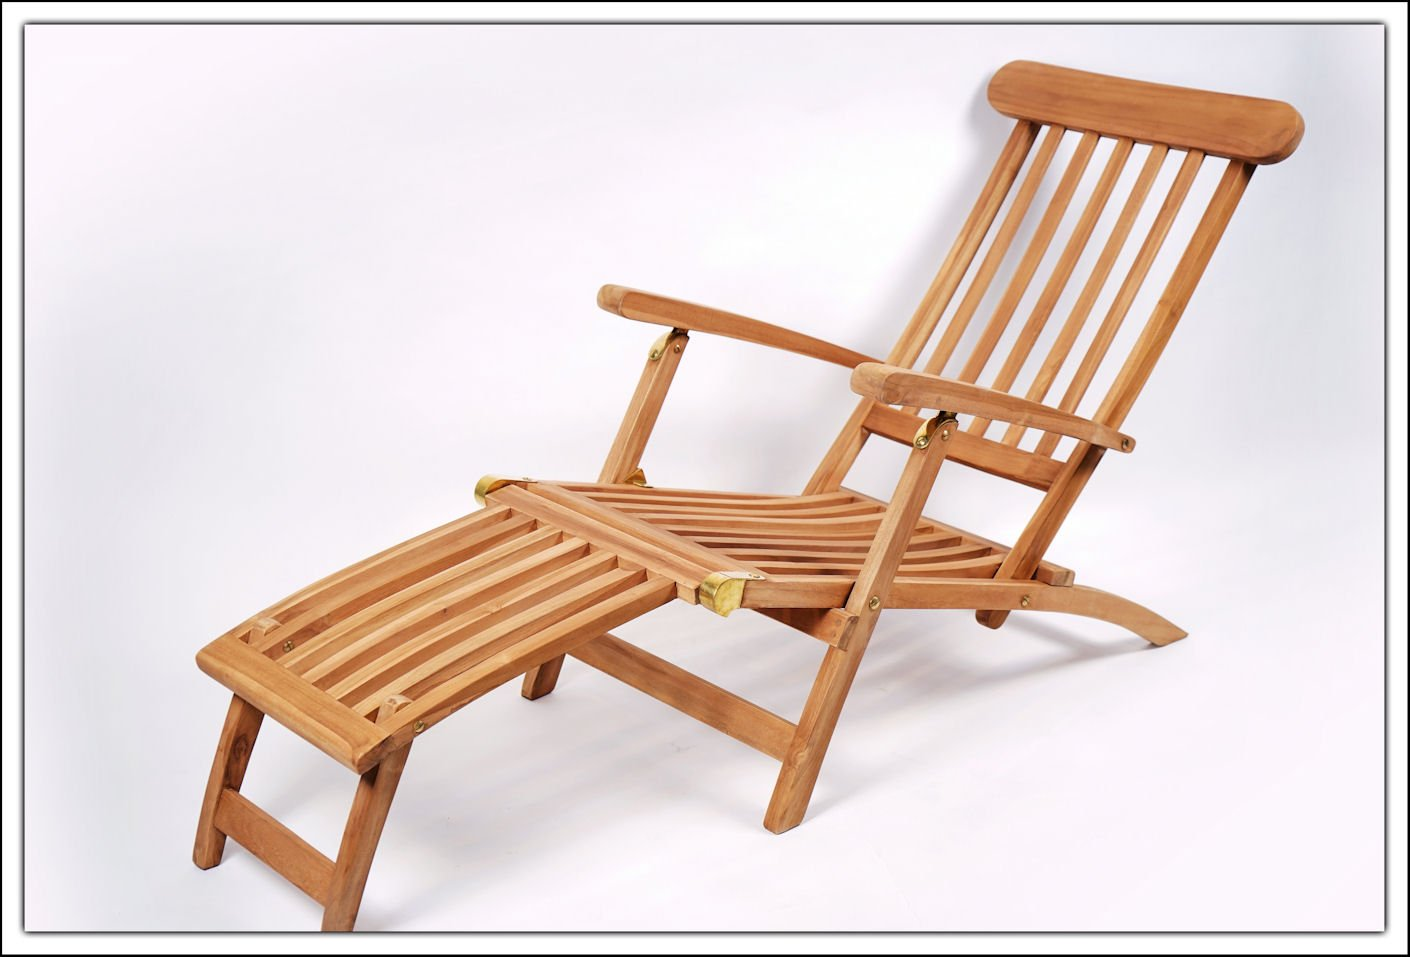 massiver teak deckchair mit verstellbarer r ckenlehne g nstig online kaufen. Black Bedroom Furniture Sets. Home Design Ideas